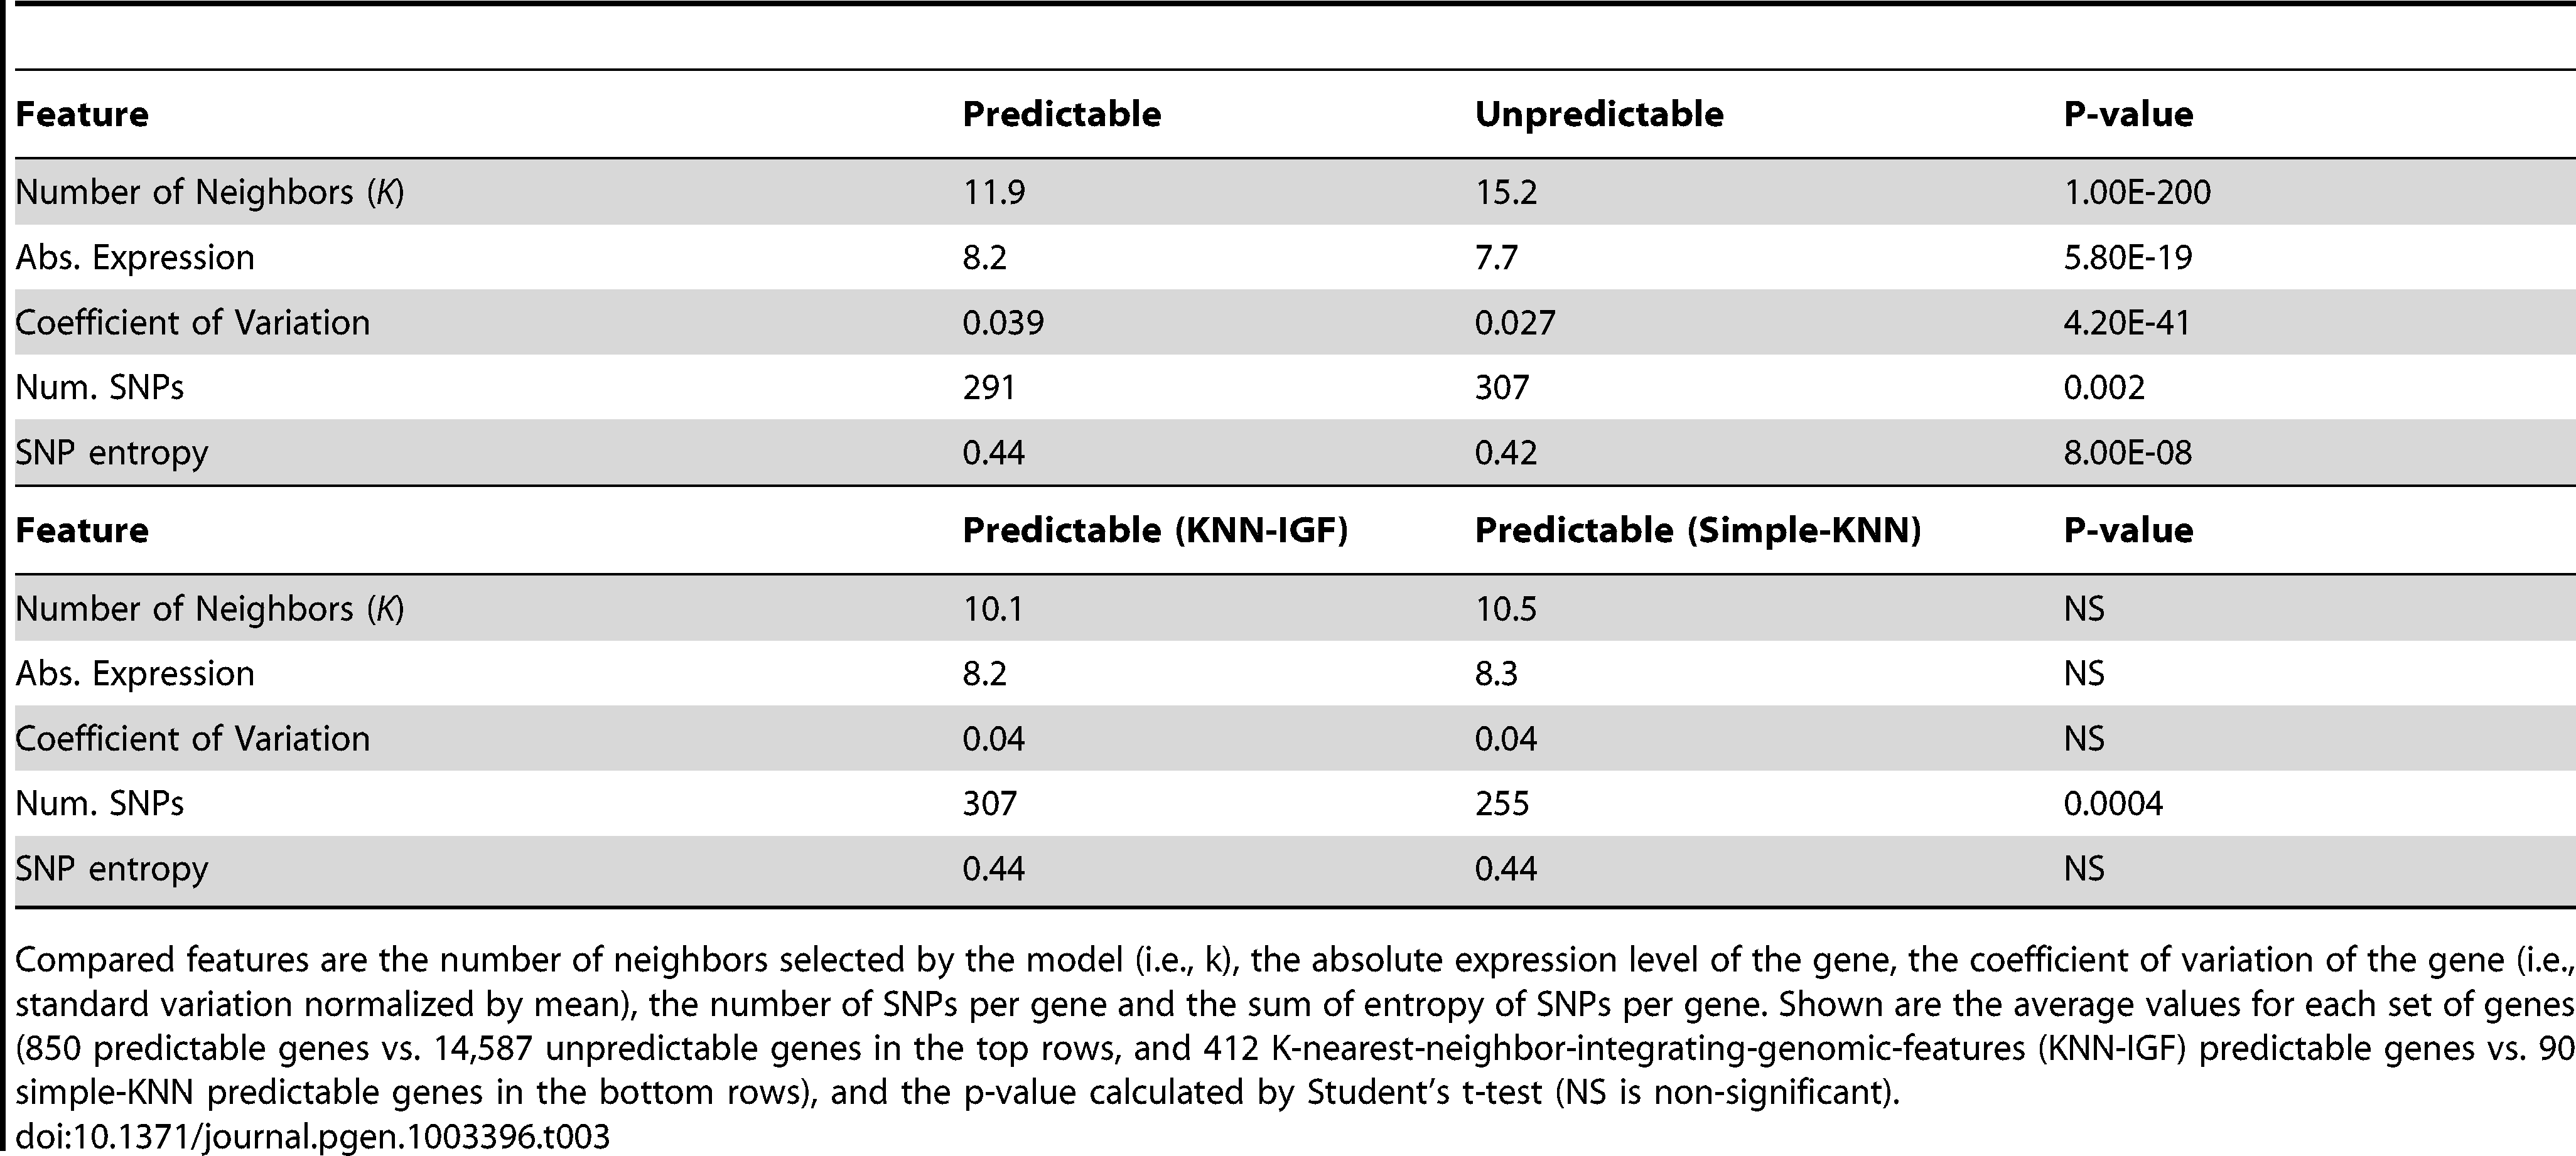 Comparison between predictable and unpredictable genes.